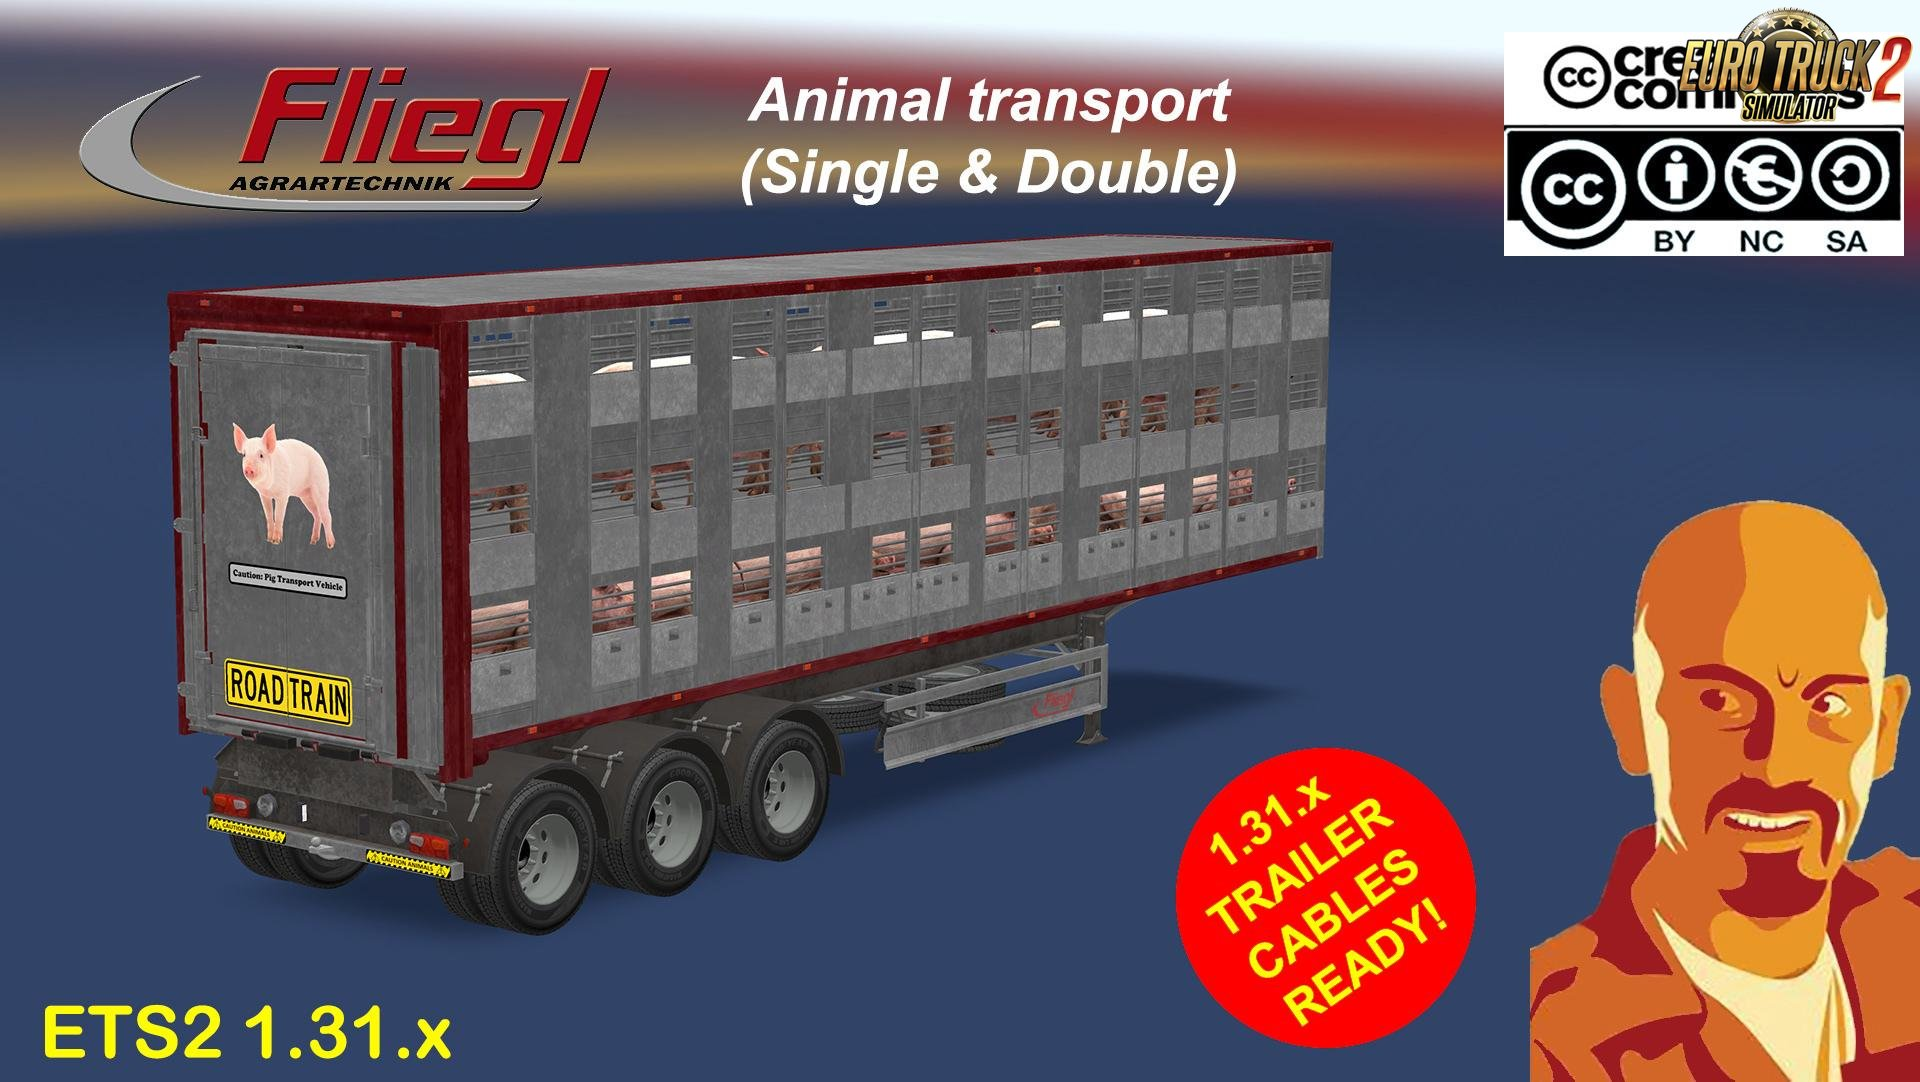 Fliegl Animals Trailer (Single & Double versions)